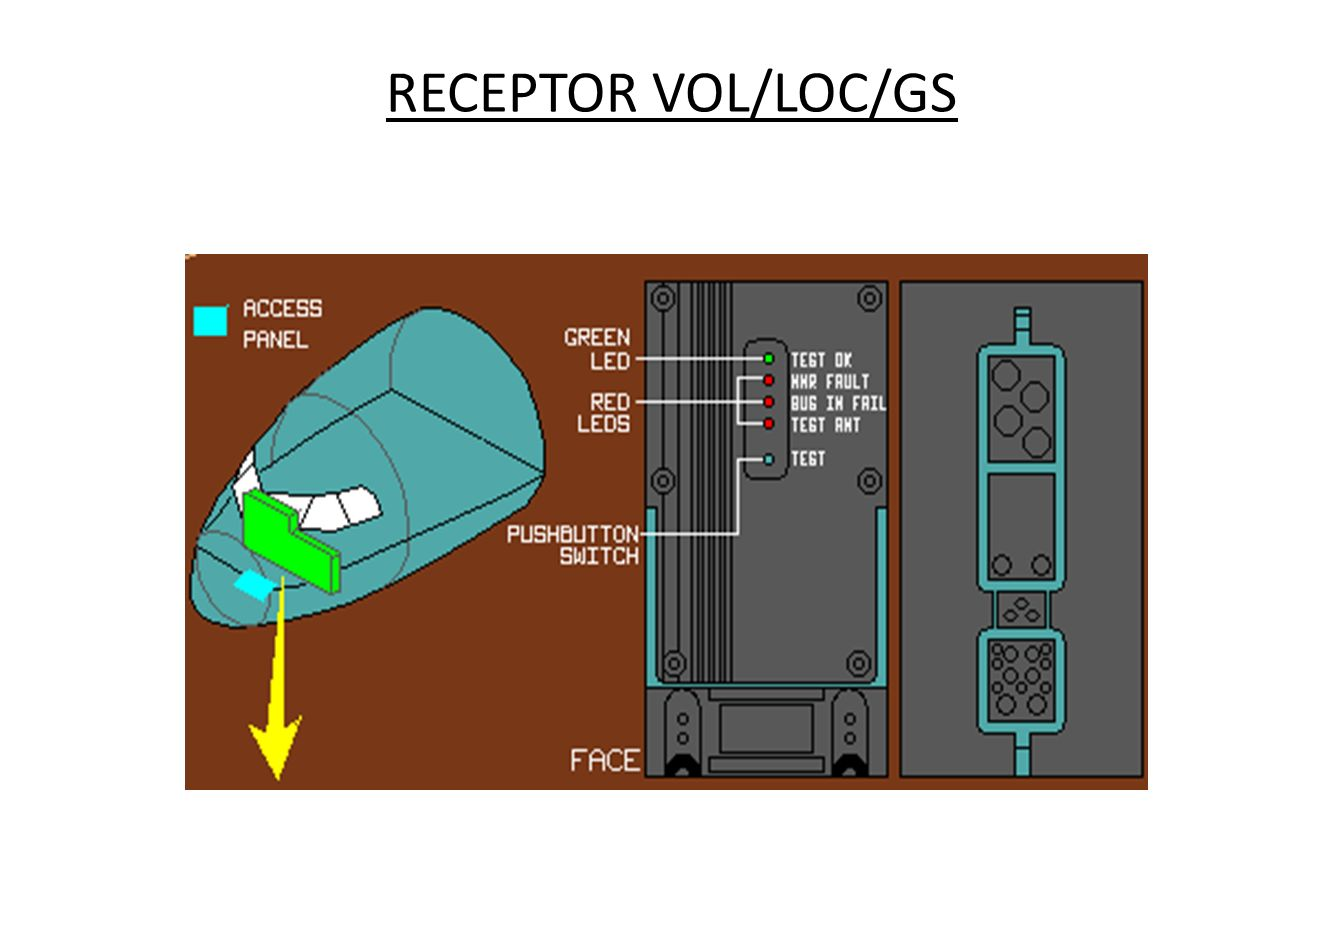 RECEPTOR VOL/LOC/GS